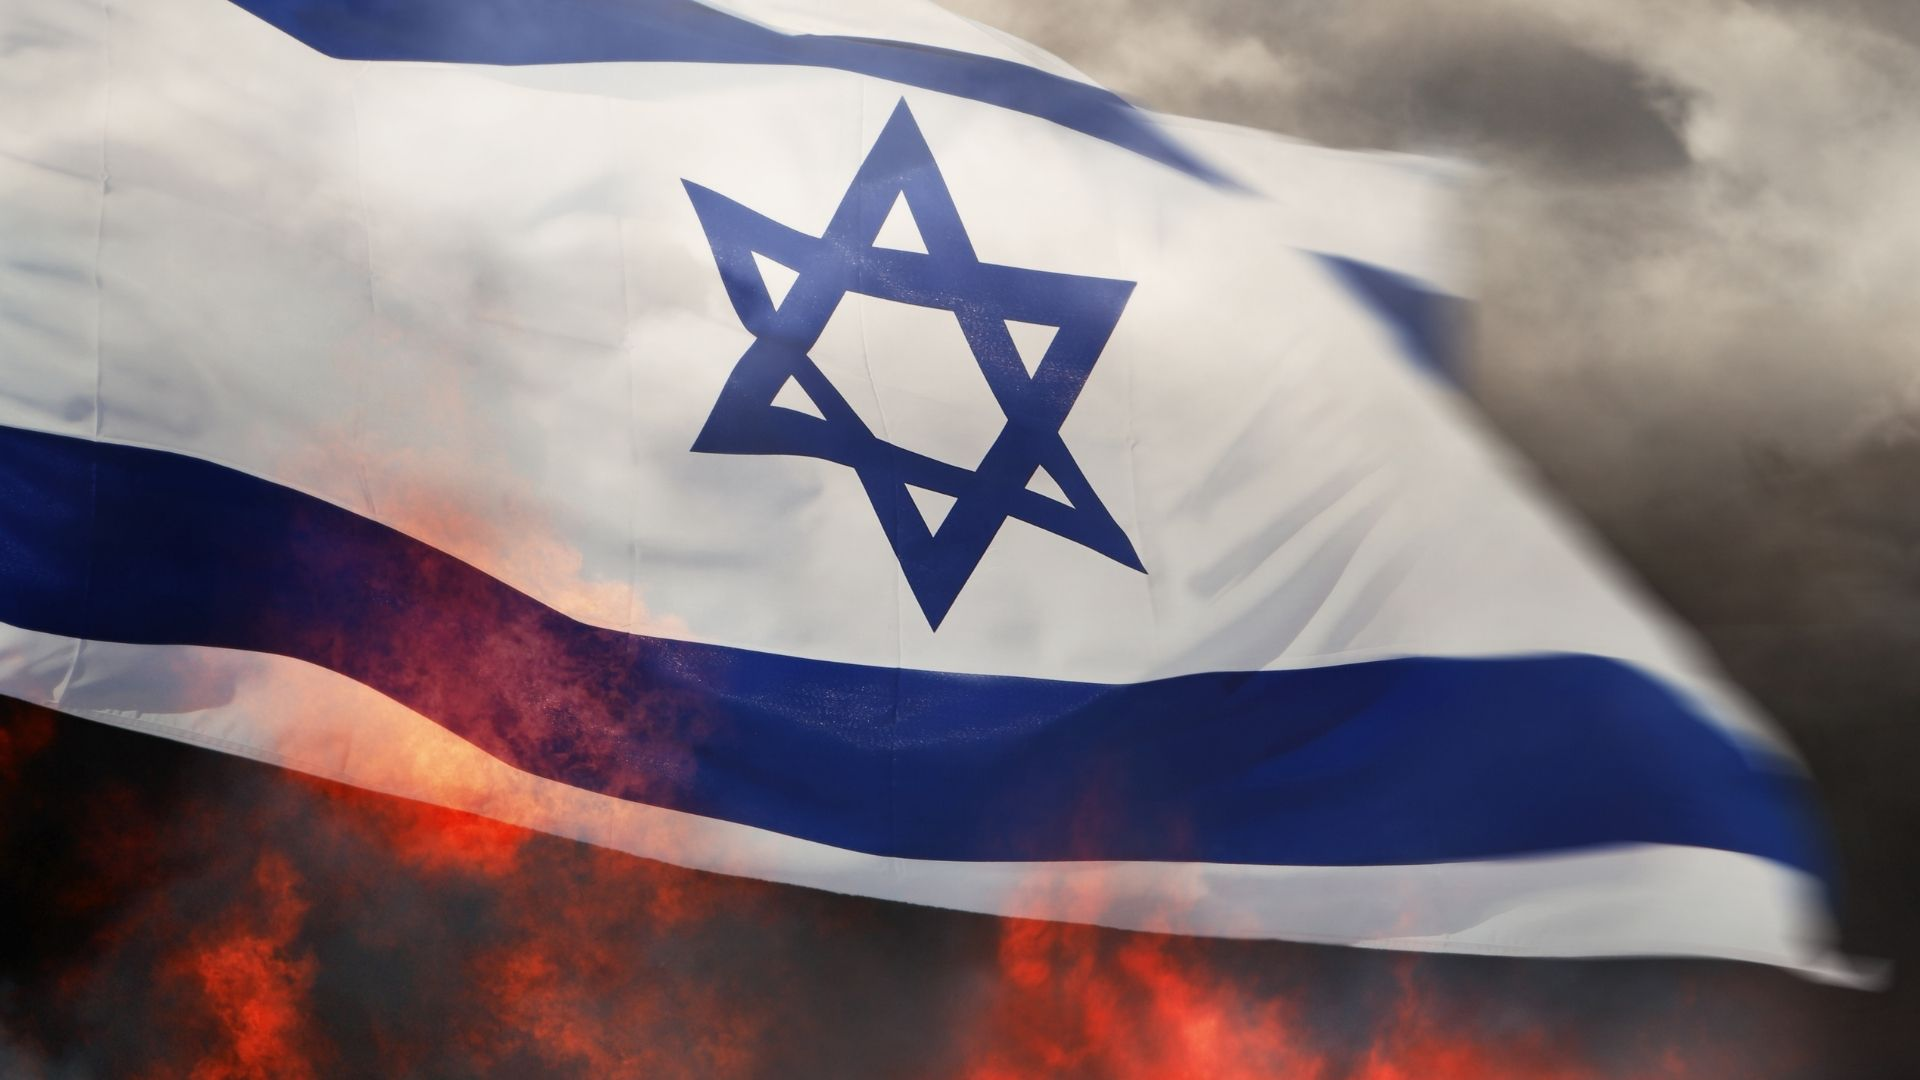 Trying to Understand the Violence in Israel